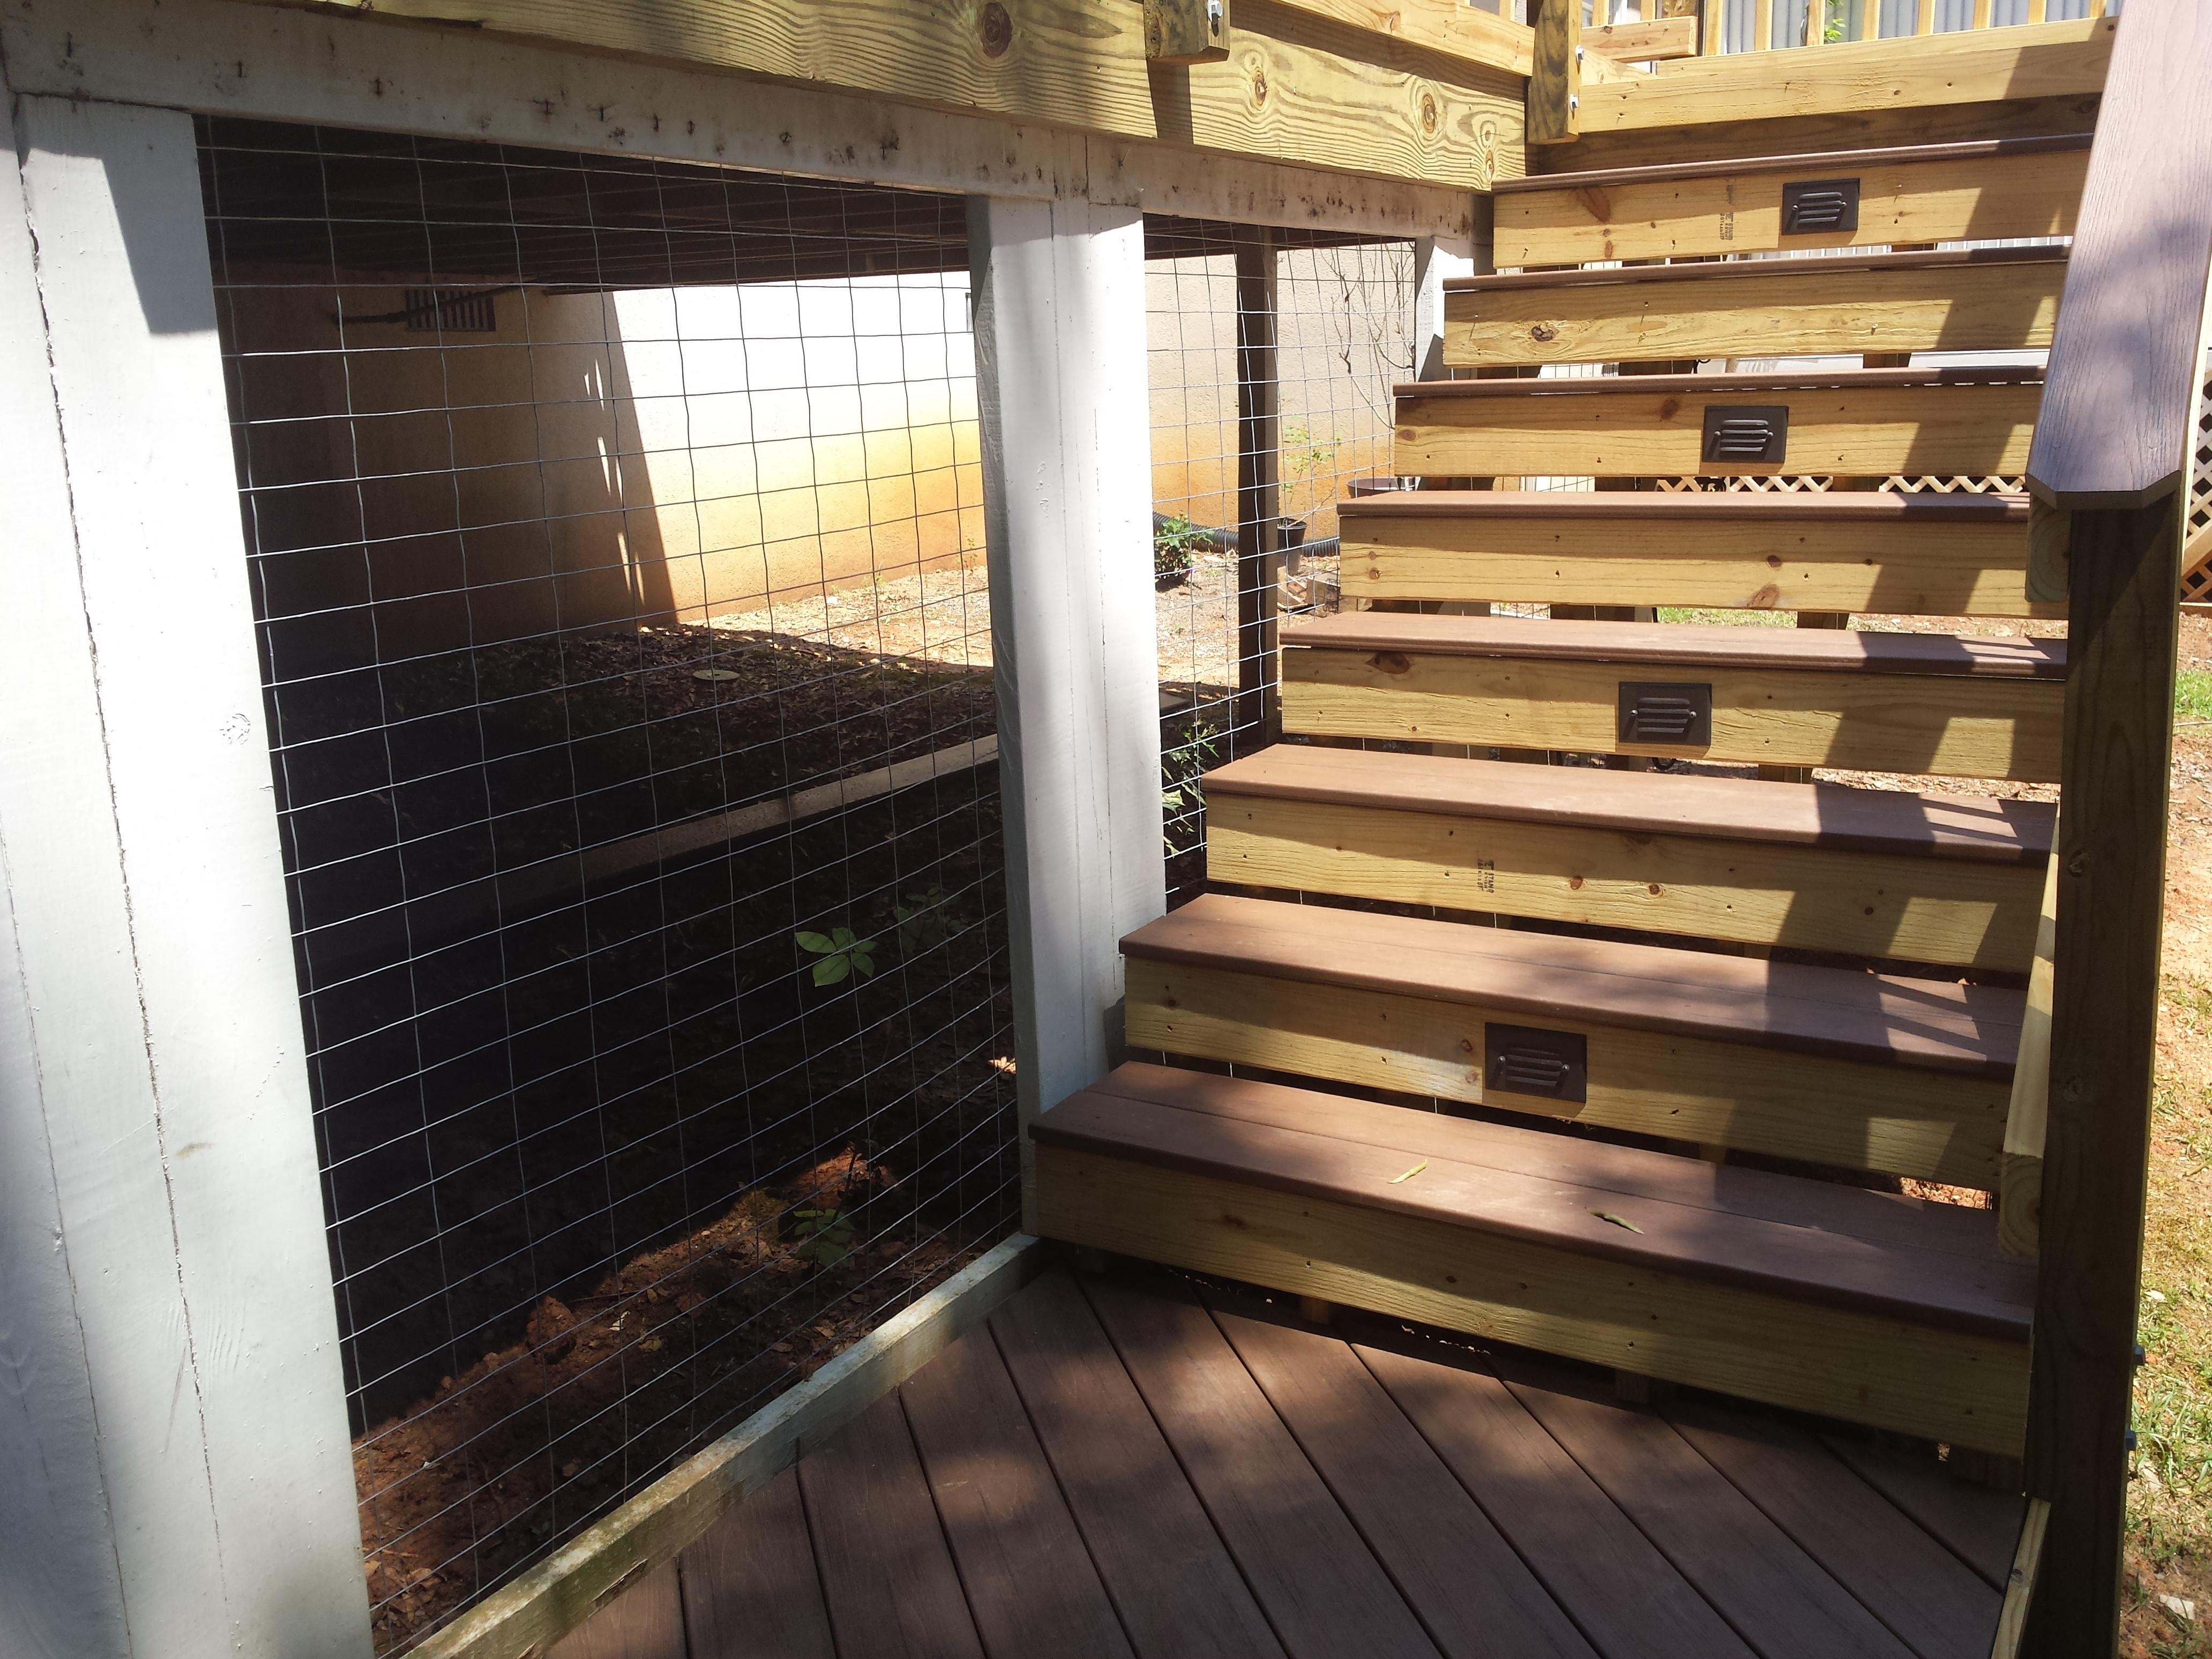 Blog Archadeck Outdoor Living Lighting Diy Deck Plans Low Voltage Wiring Taking The Design A Step Further Of Central Georgia Also Removed All Existing Lattice Skirting That Existed From Decks Original